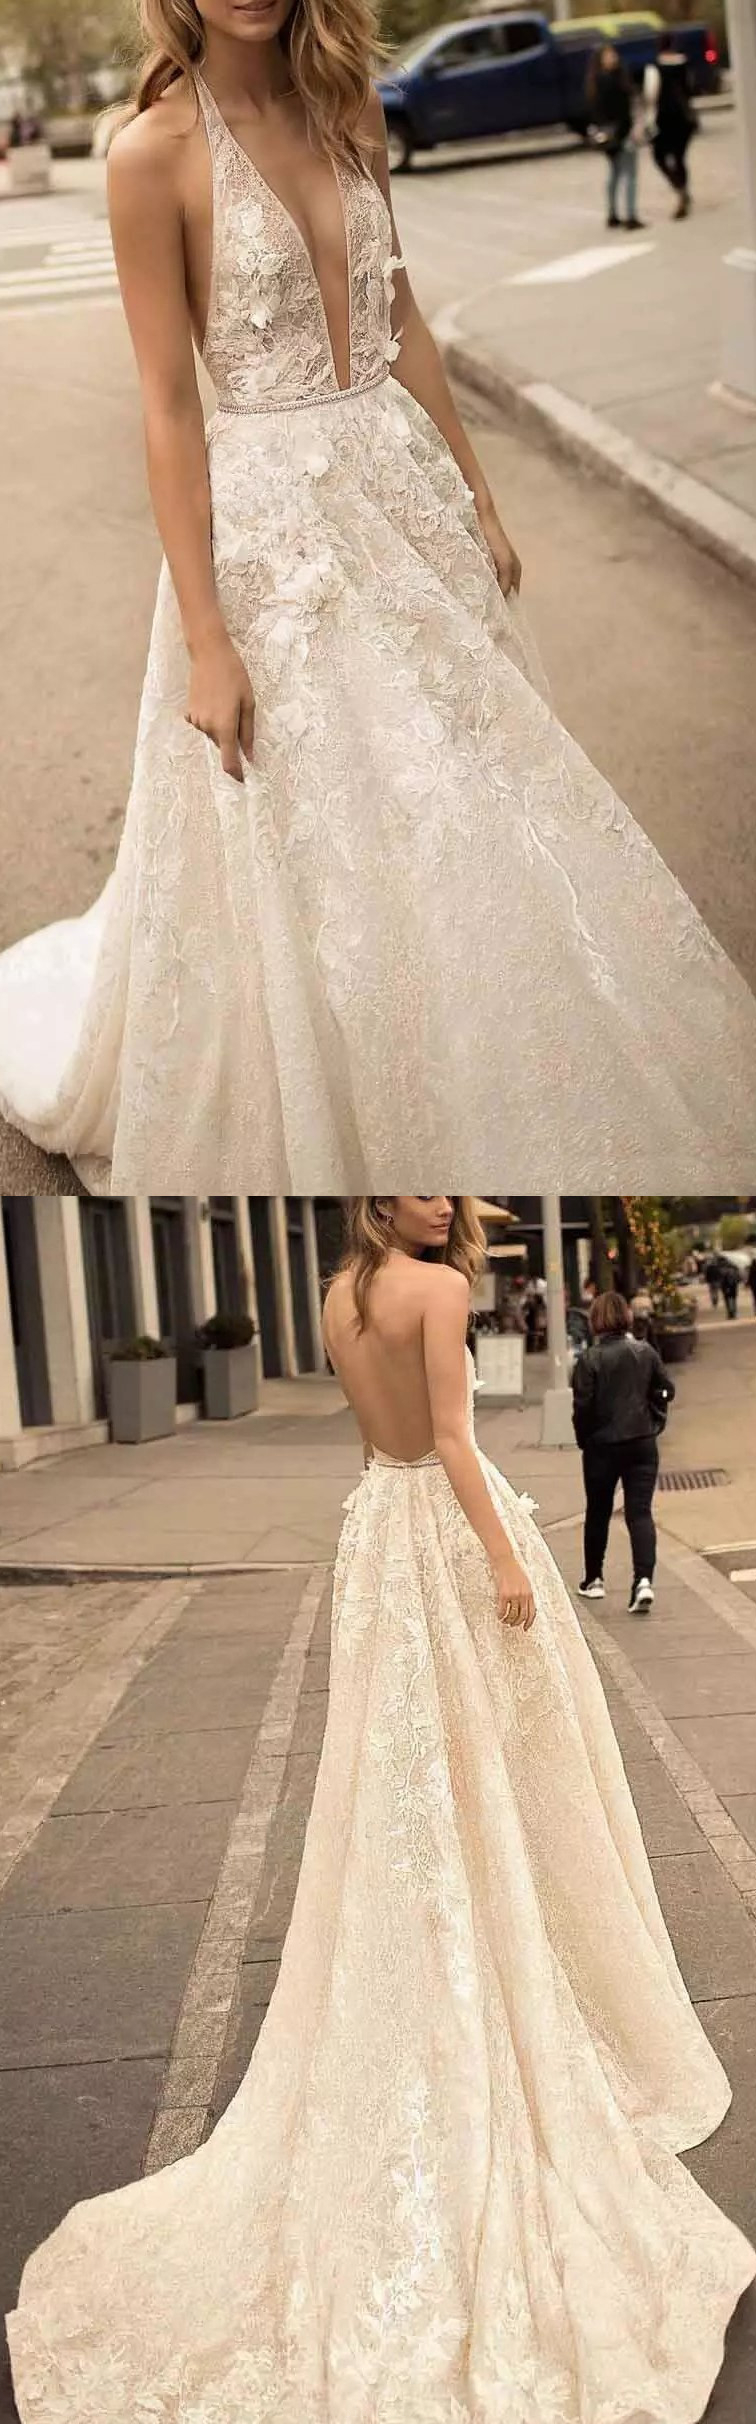 Lace wedding dress with train  Trendy White Long Wedding Dress With Backless Lace Organza Sweep